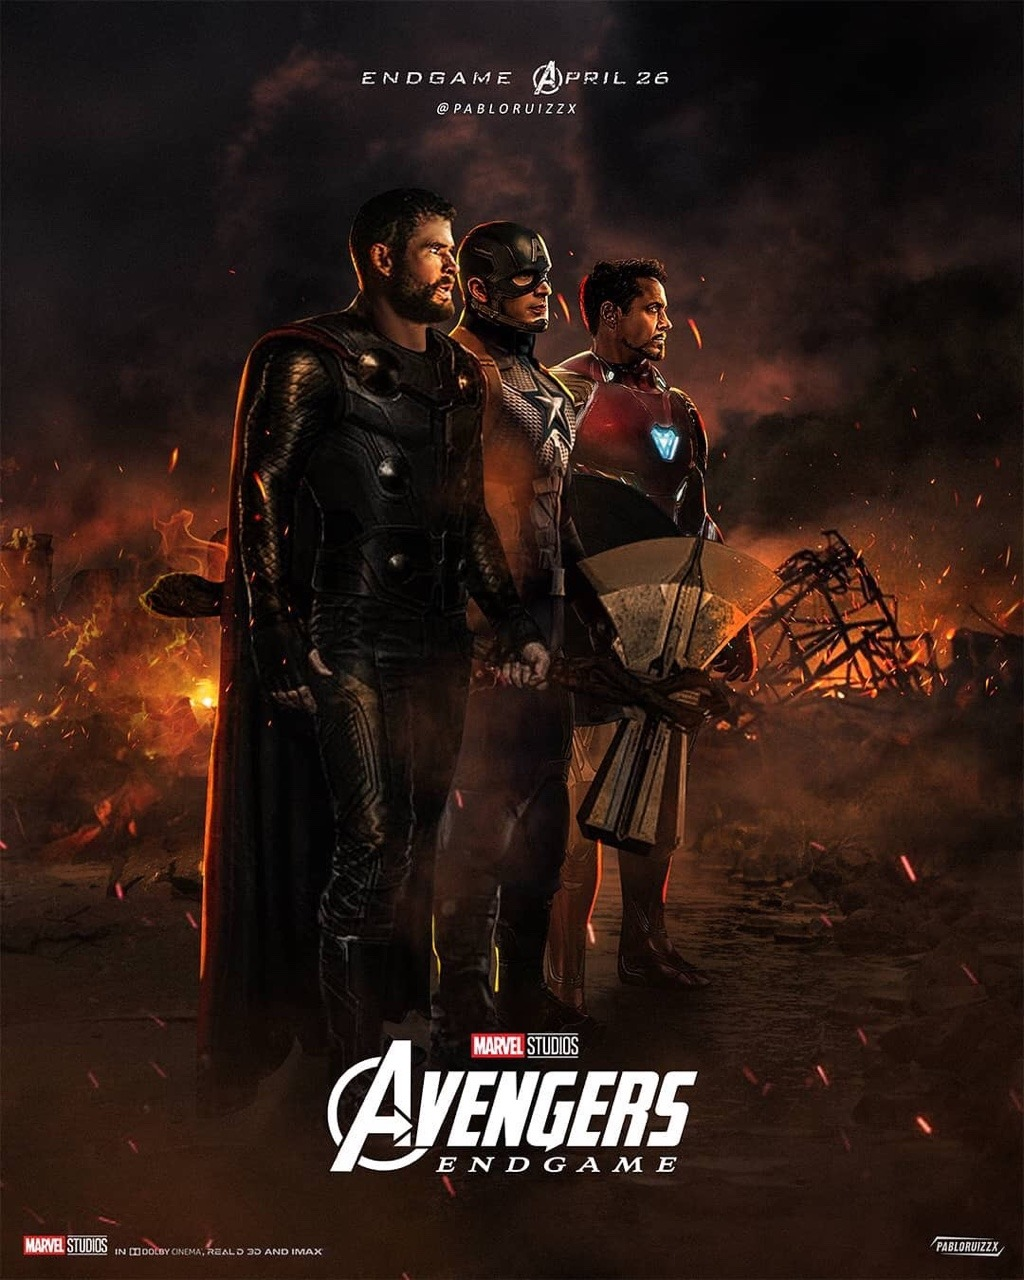 The Avengers Images Avengers Endgame 2019 Movie Posters Hd